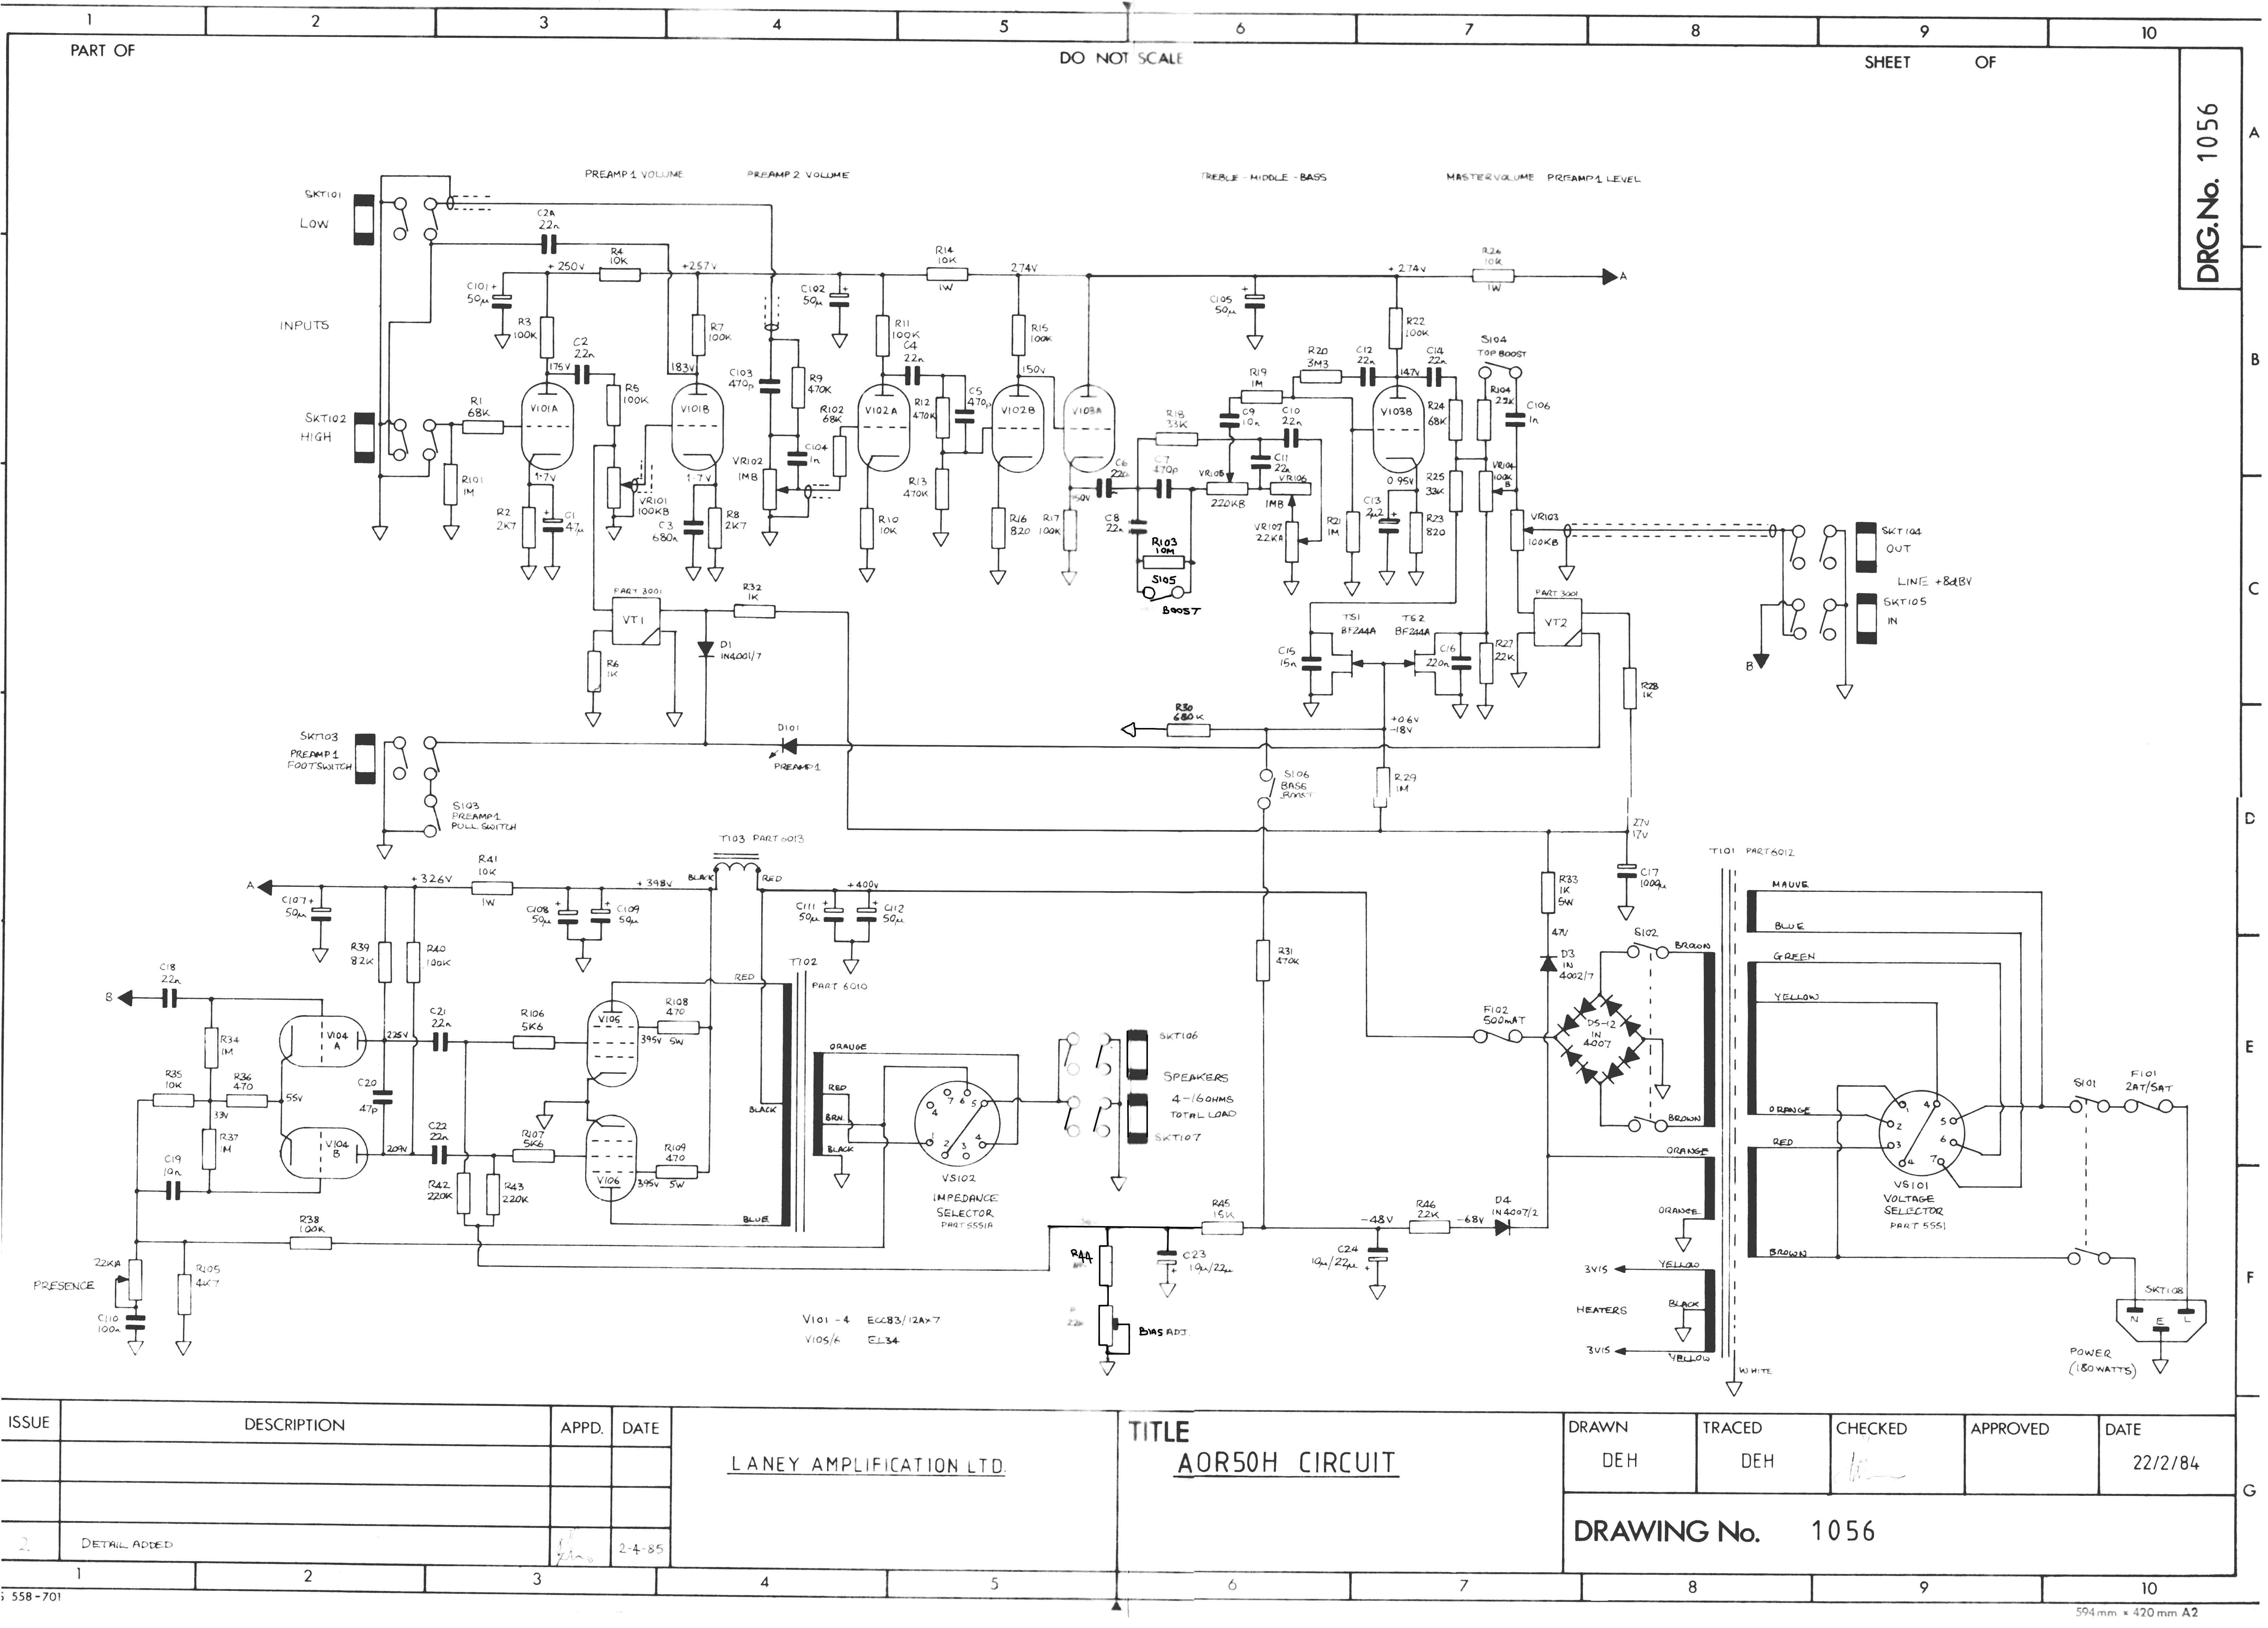 amplifiers head combo drawings/LANEY/AOR50H[pict] - schemes drawings